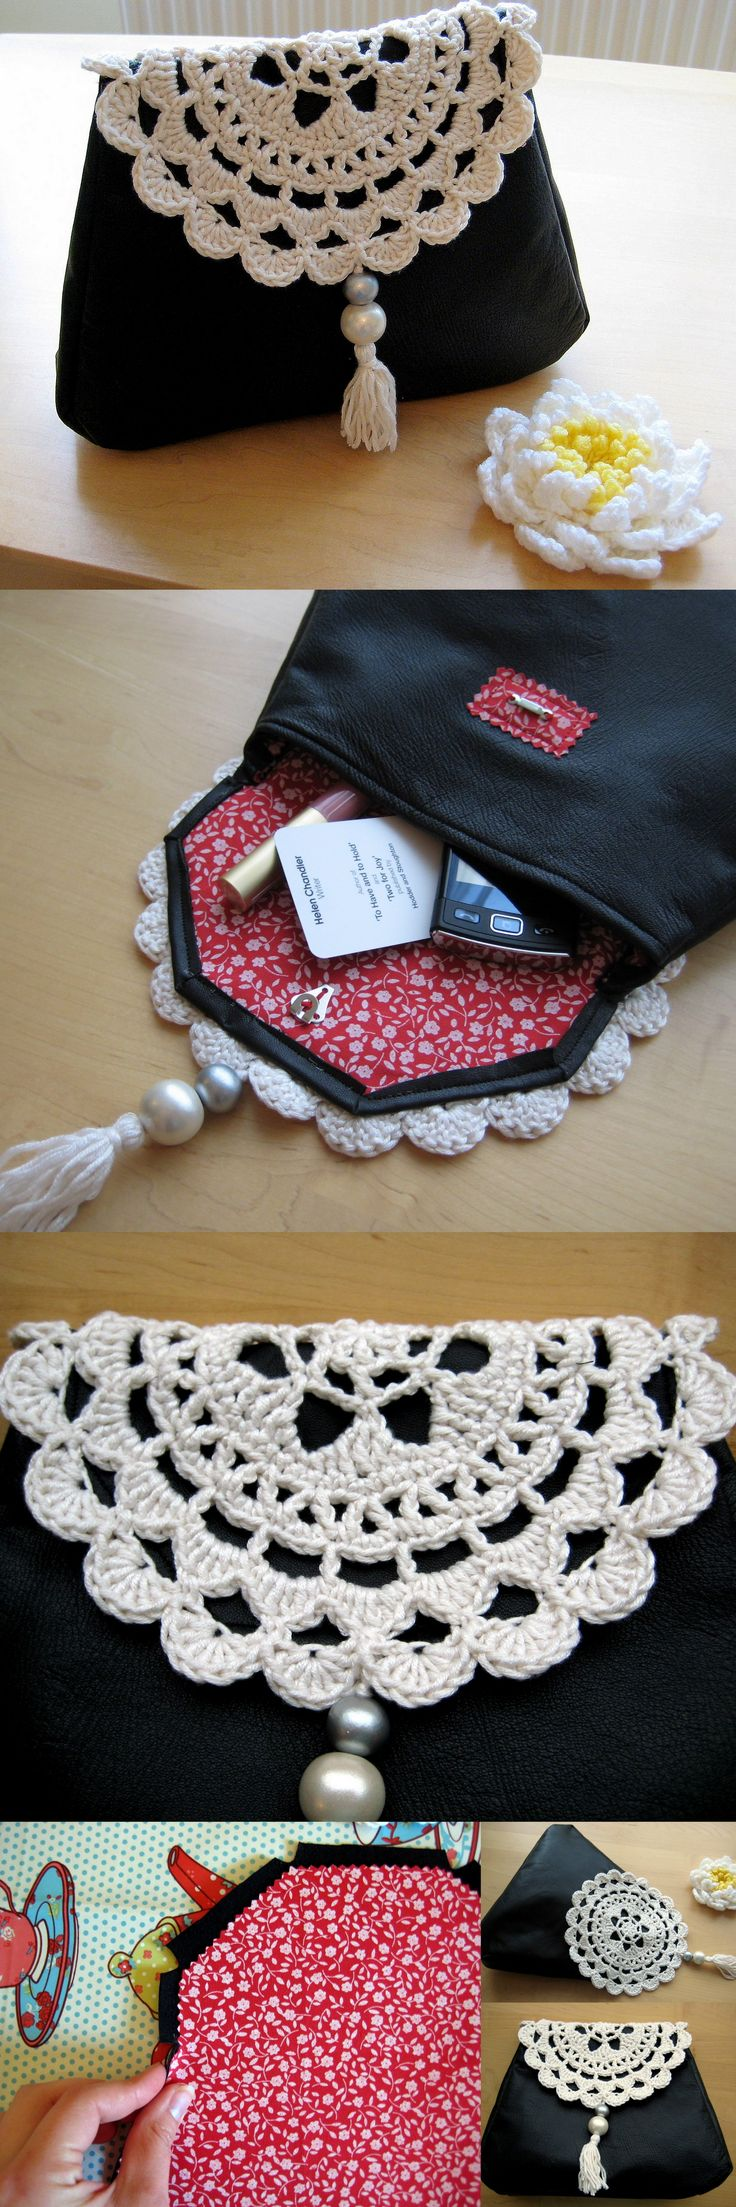 Make a leather and crochet doily clutch with this free tutorial! ♥